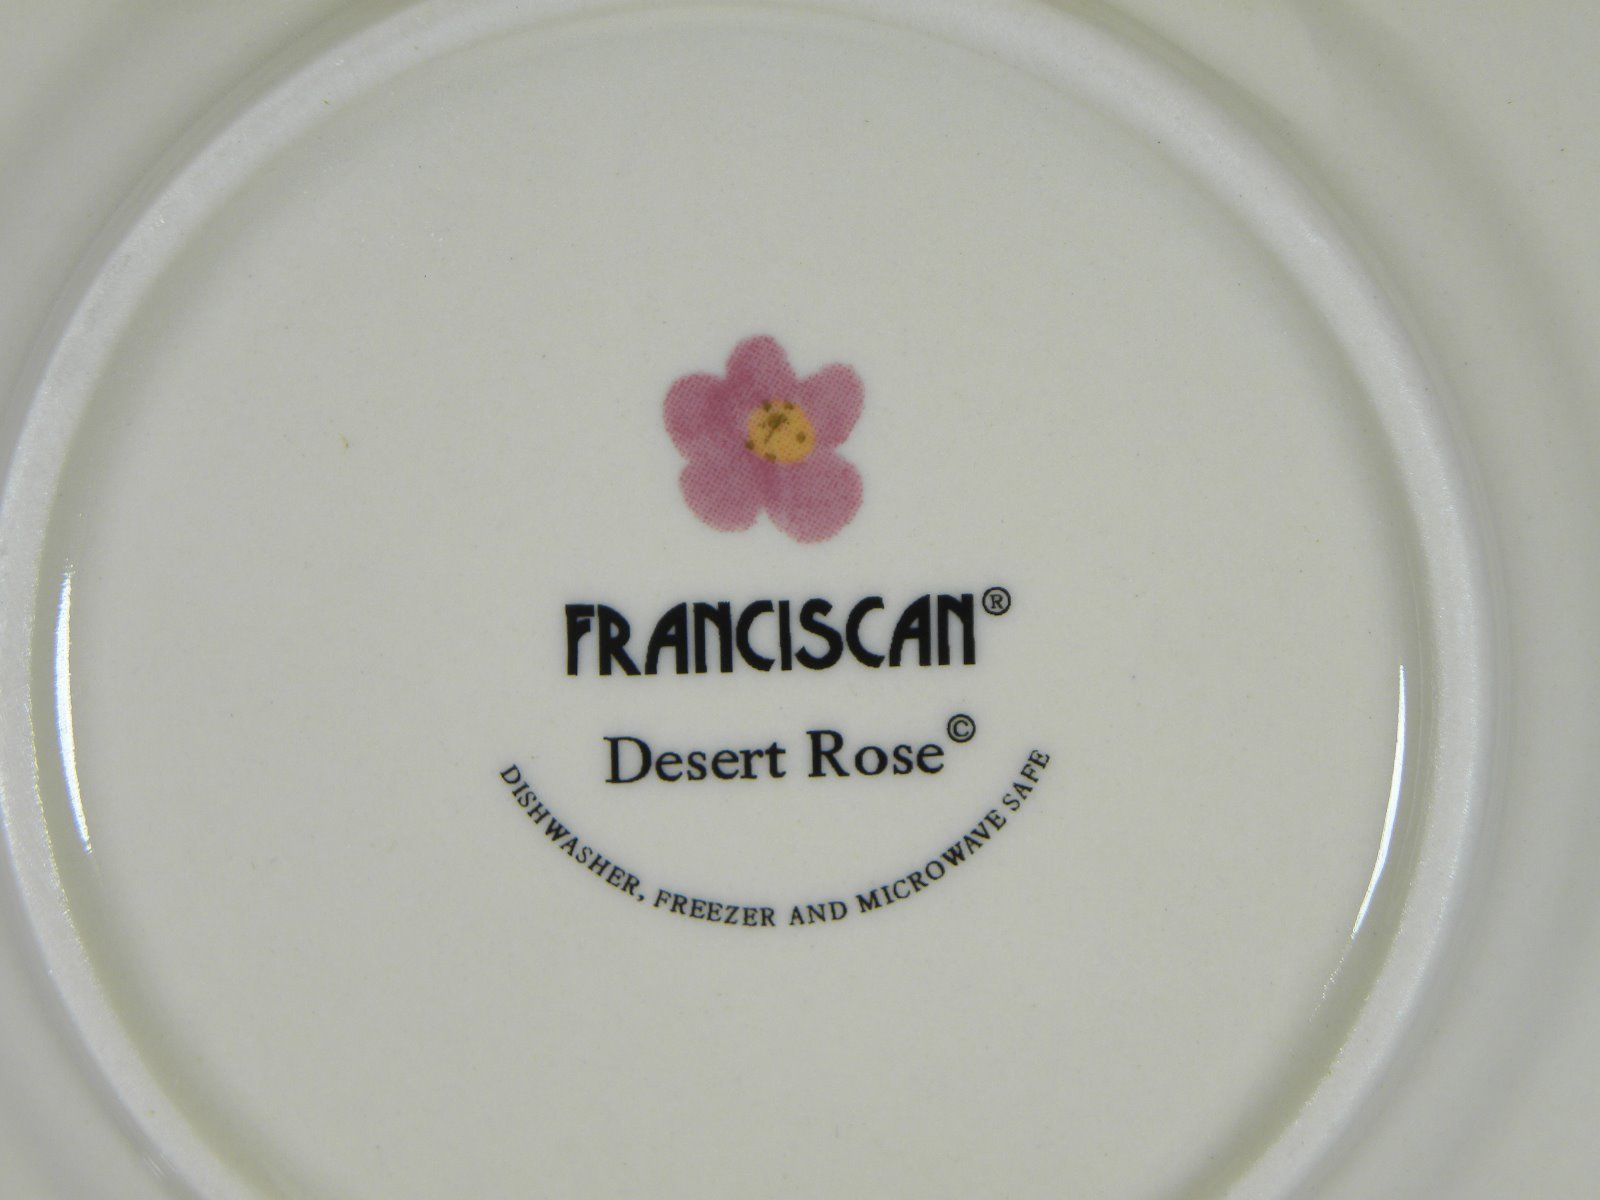 Franciscan Desert Rose Bread & Butter Plates Set of 4 BRAND NEW PRODUCTION